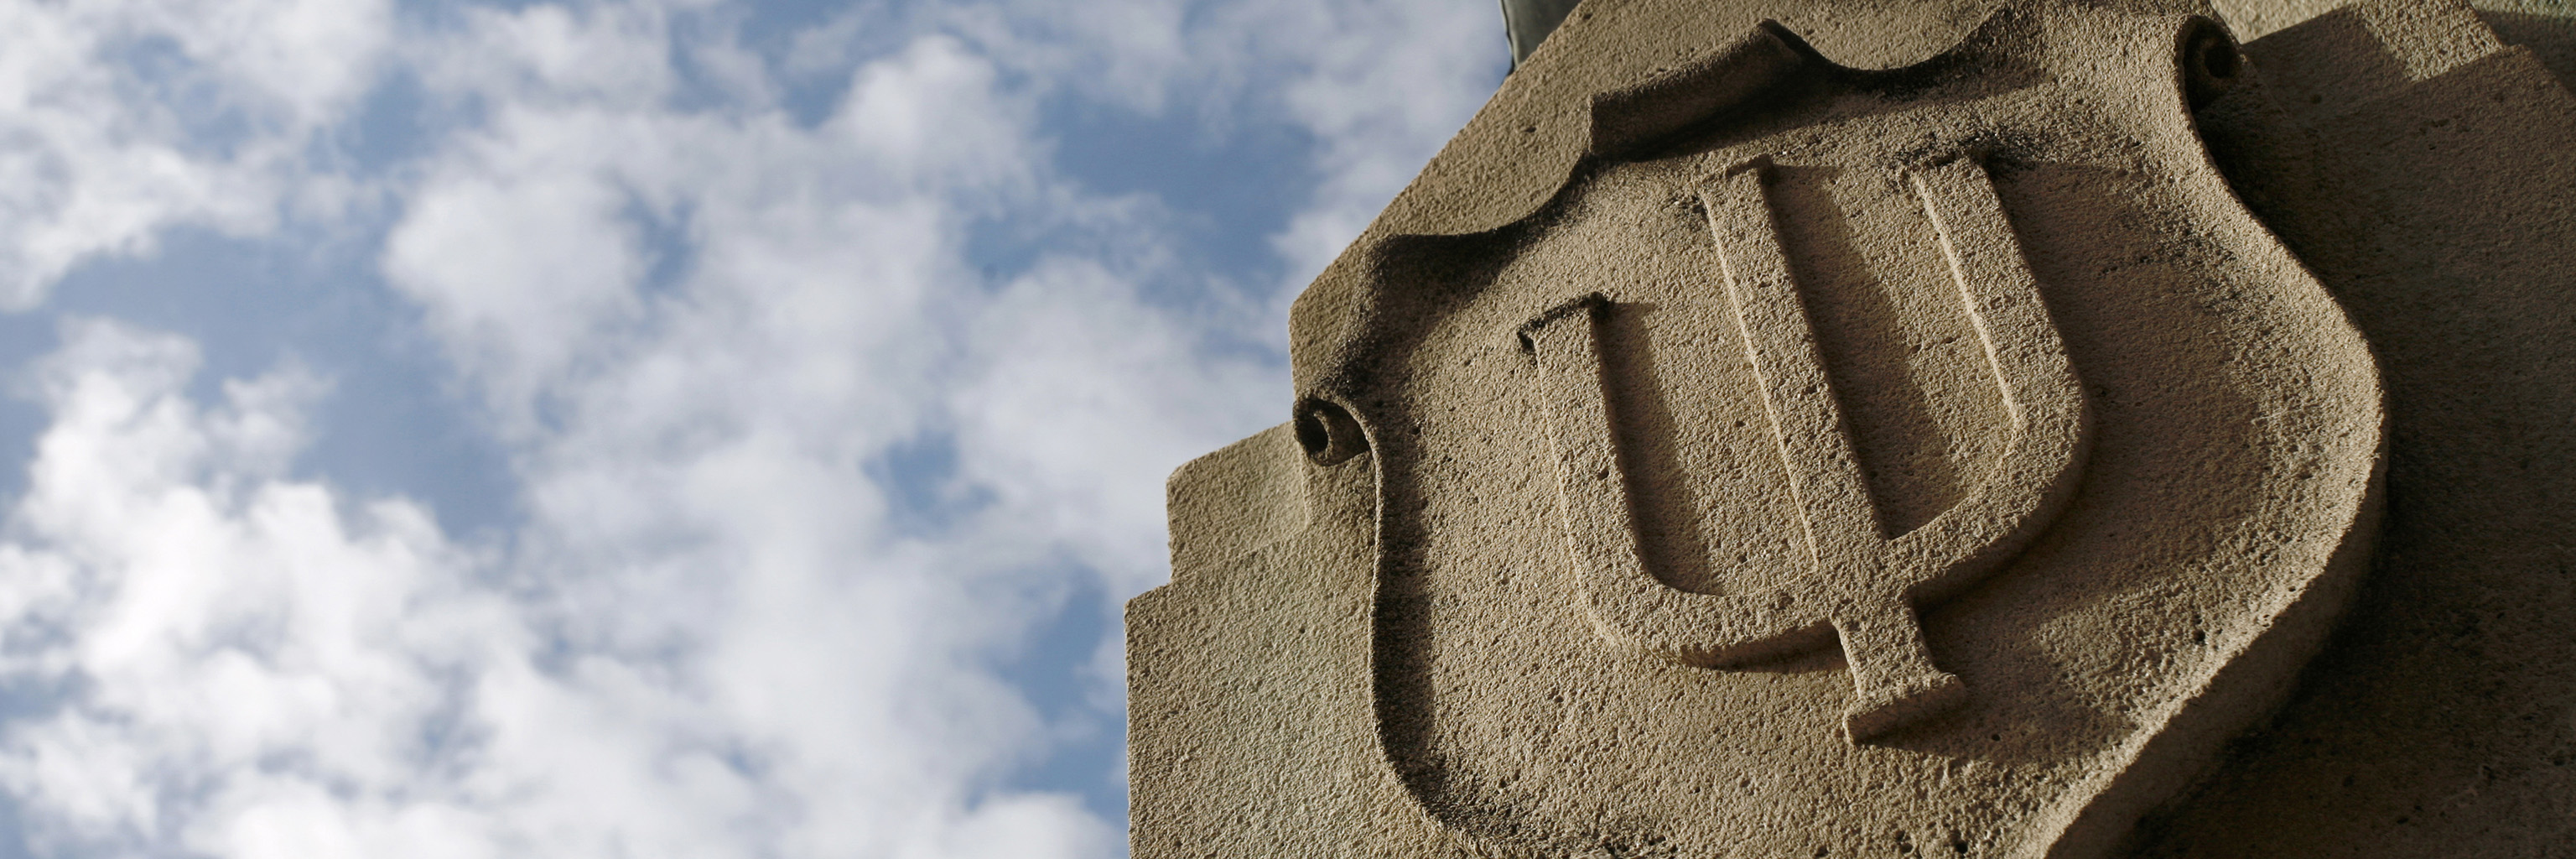 Limestone relief of a crest decorated with the Indiana University trident